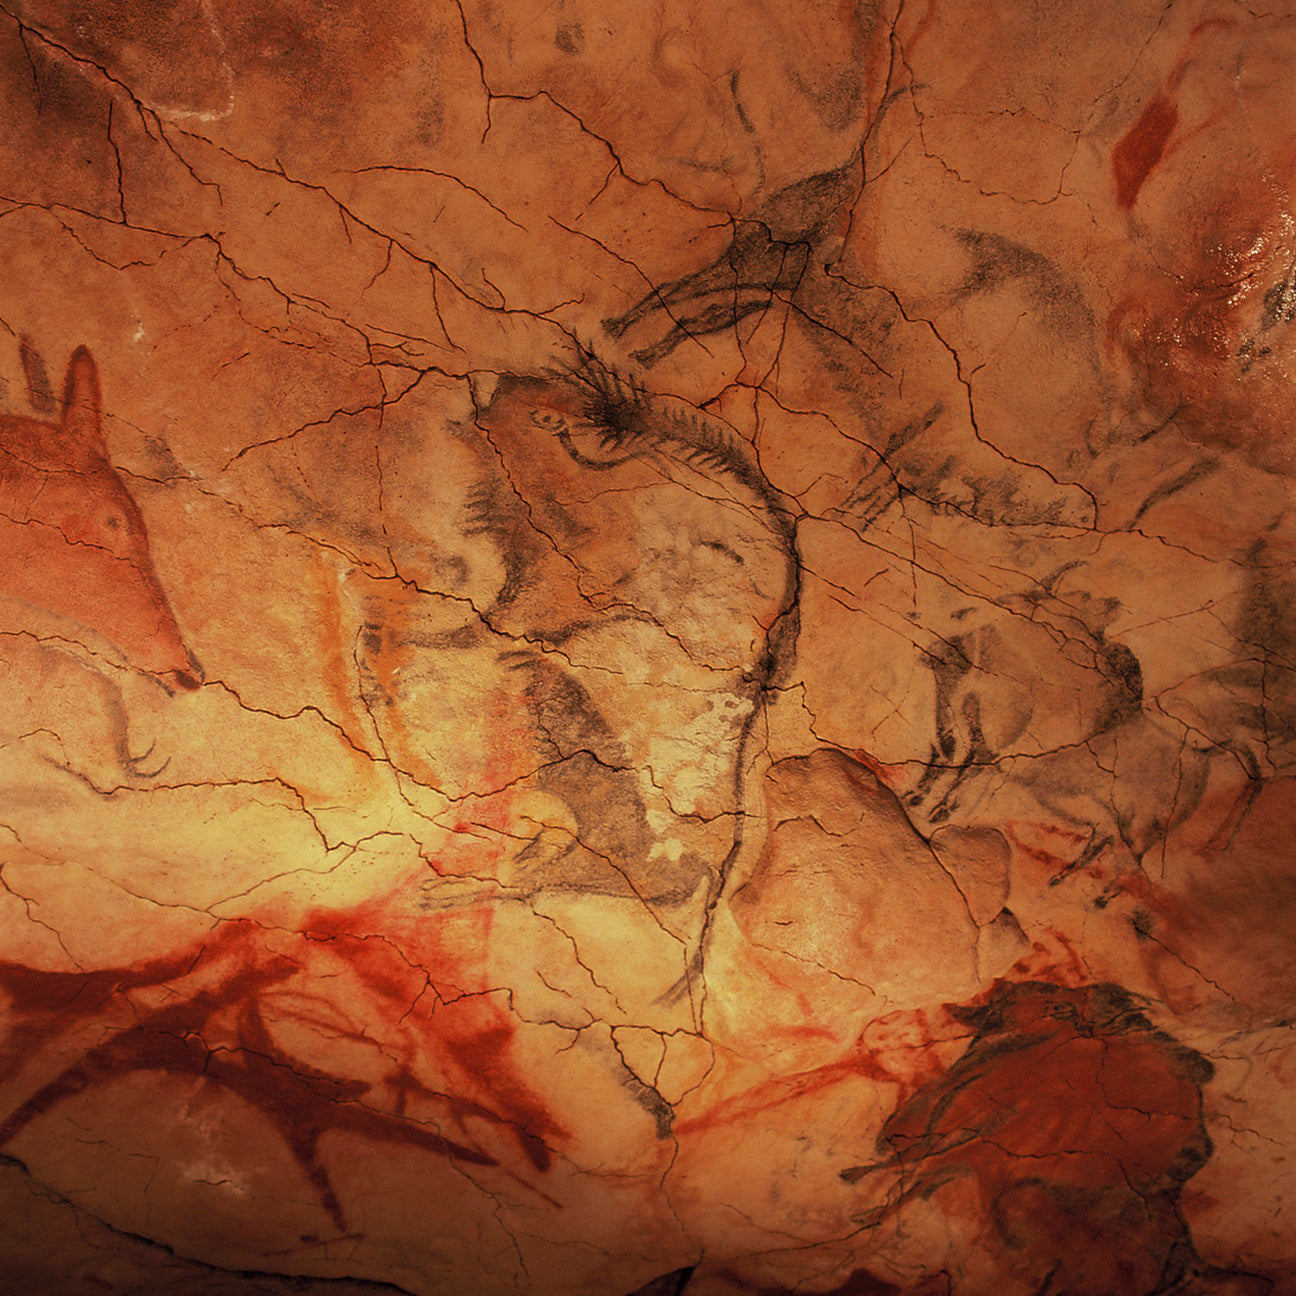 Cave of Altamira and Paleolithic Cave Art of Northern Spain-110113